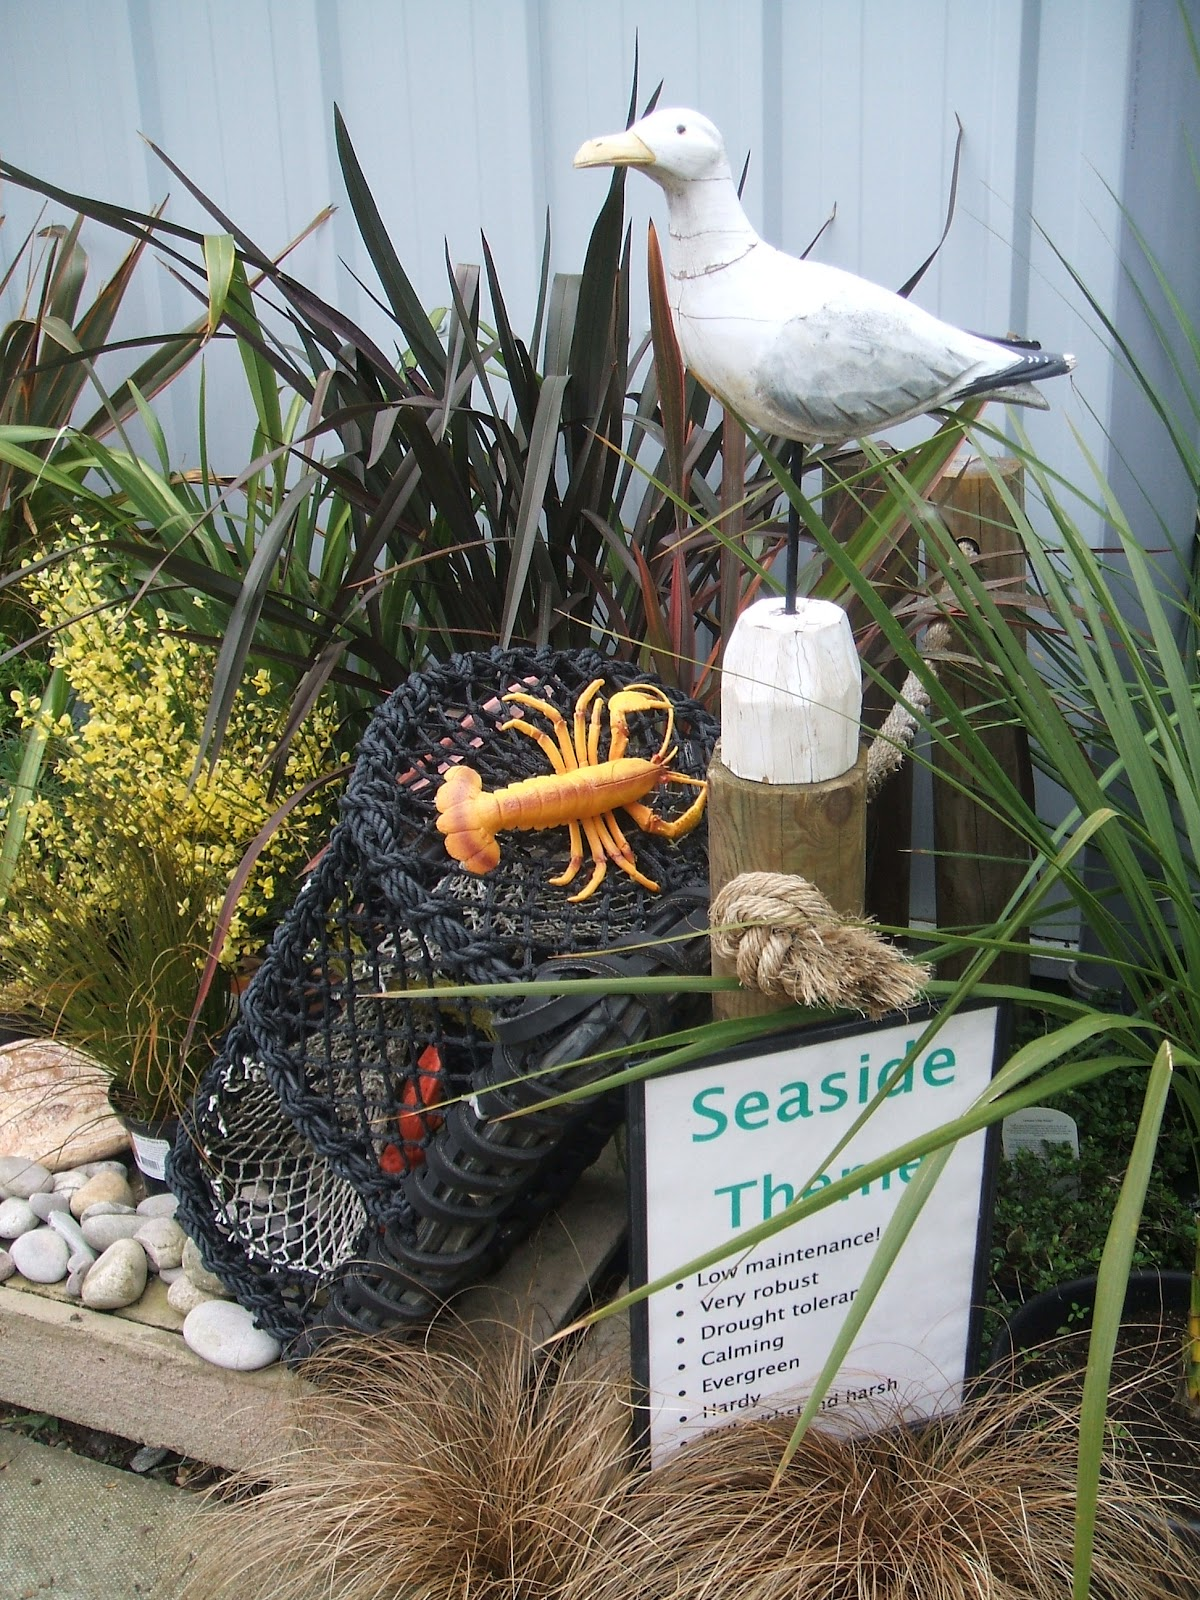 Seaside Theme My Local Thompsons Plant And Garden Centre Have Got Some Great Inspirational Planting Ideas Going On At The Moment